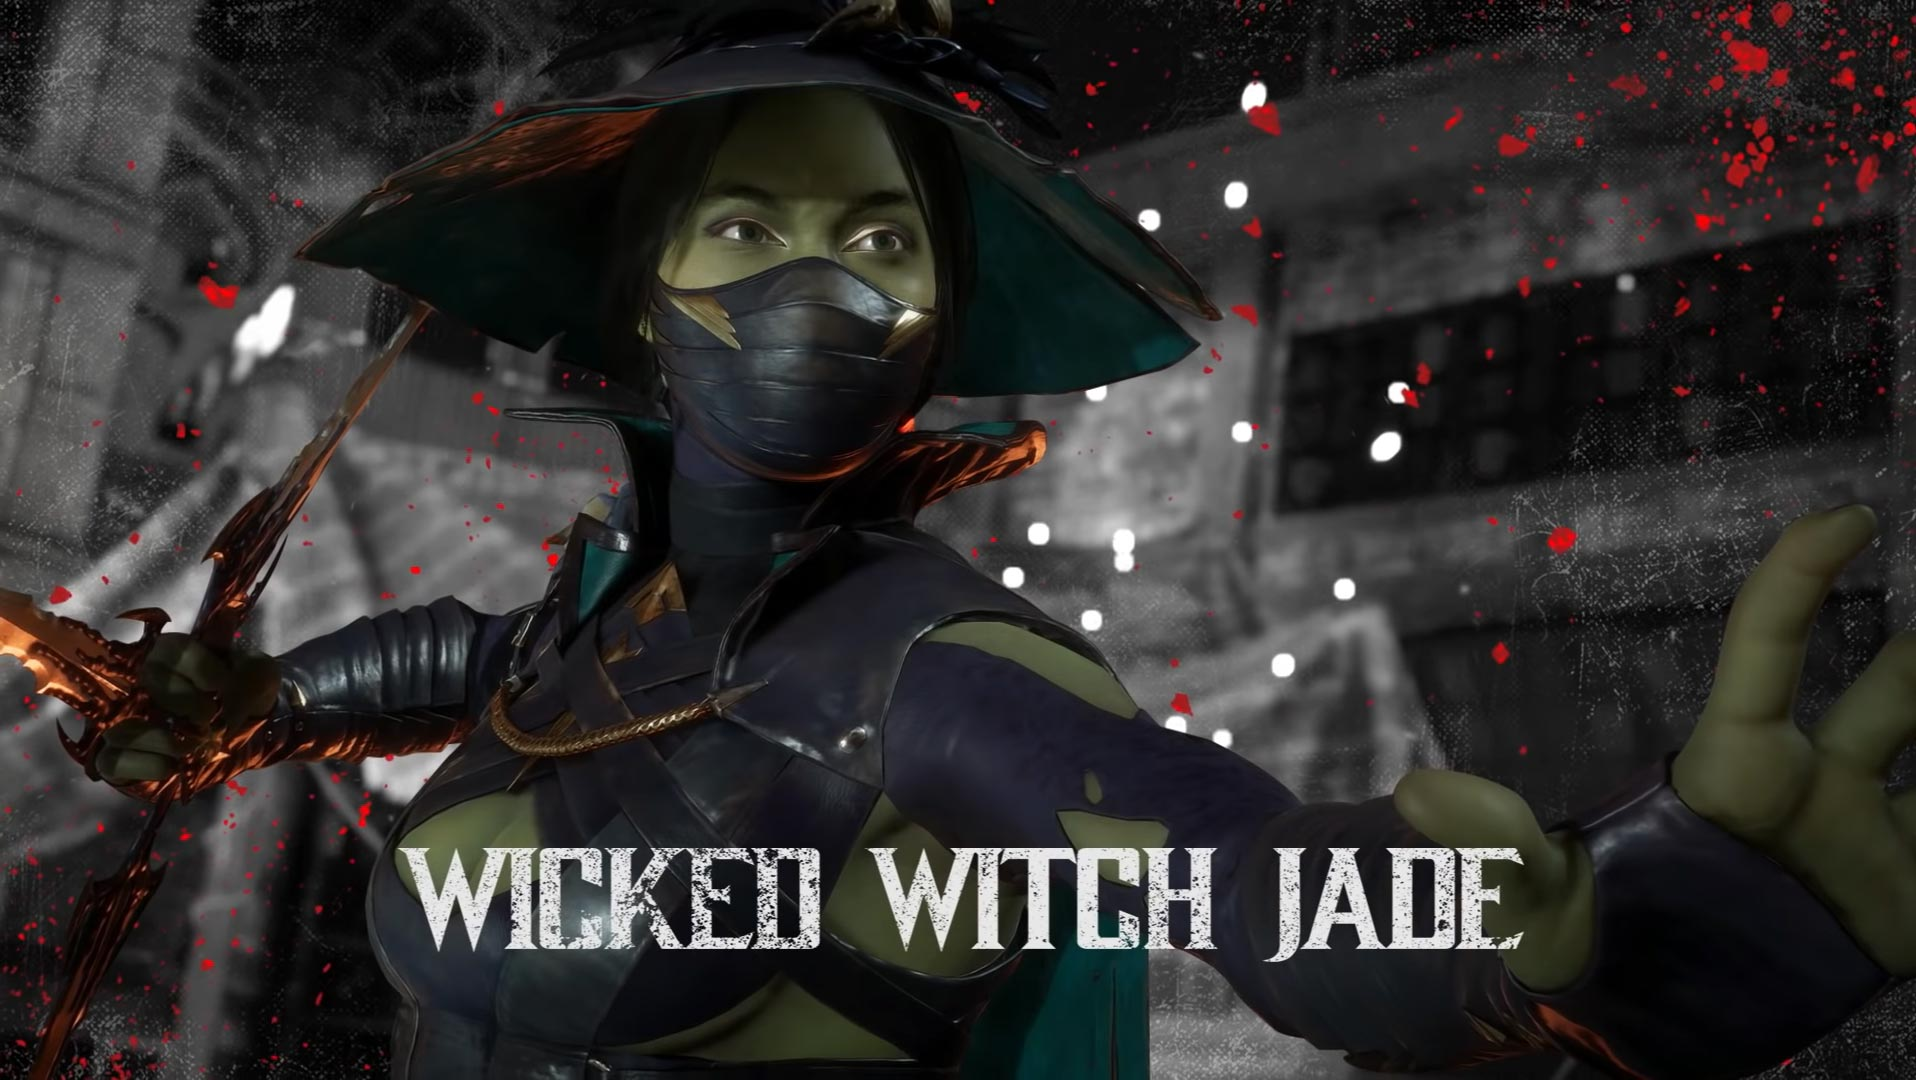 Mortal Kombat Halloween 1 out of 4 image gallery